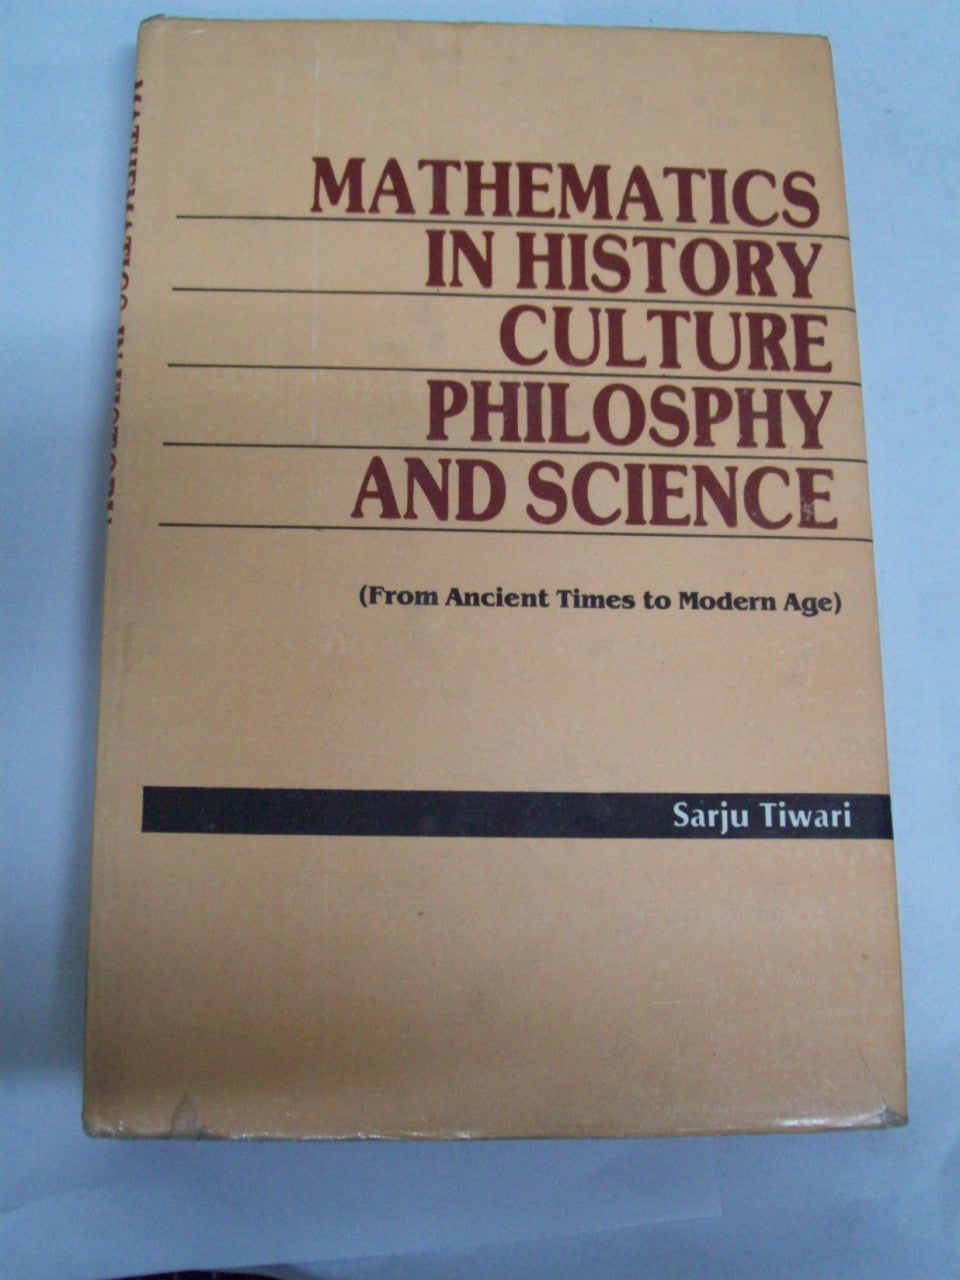 Mathematics In History, Culture, Philosophy And Science: From Ancient Times To Modern Age